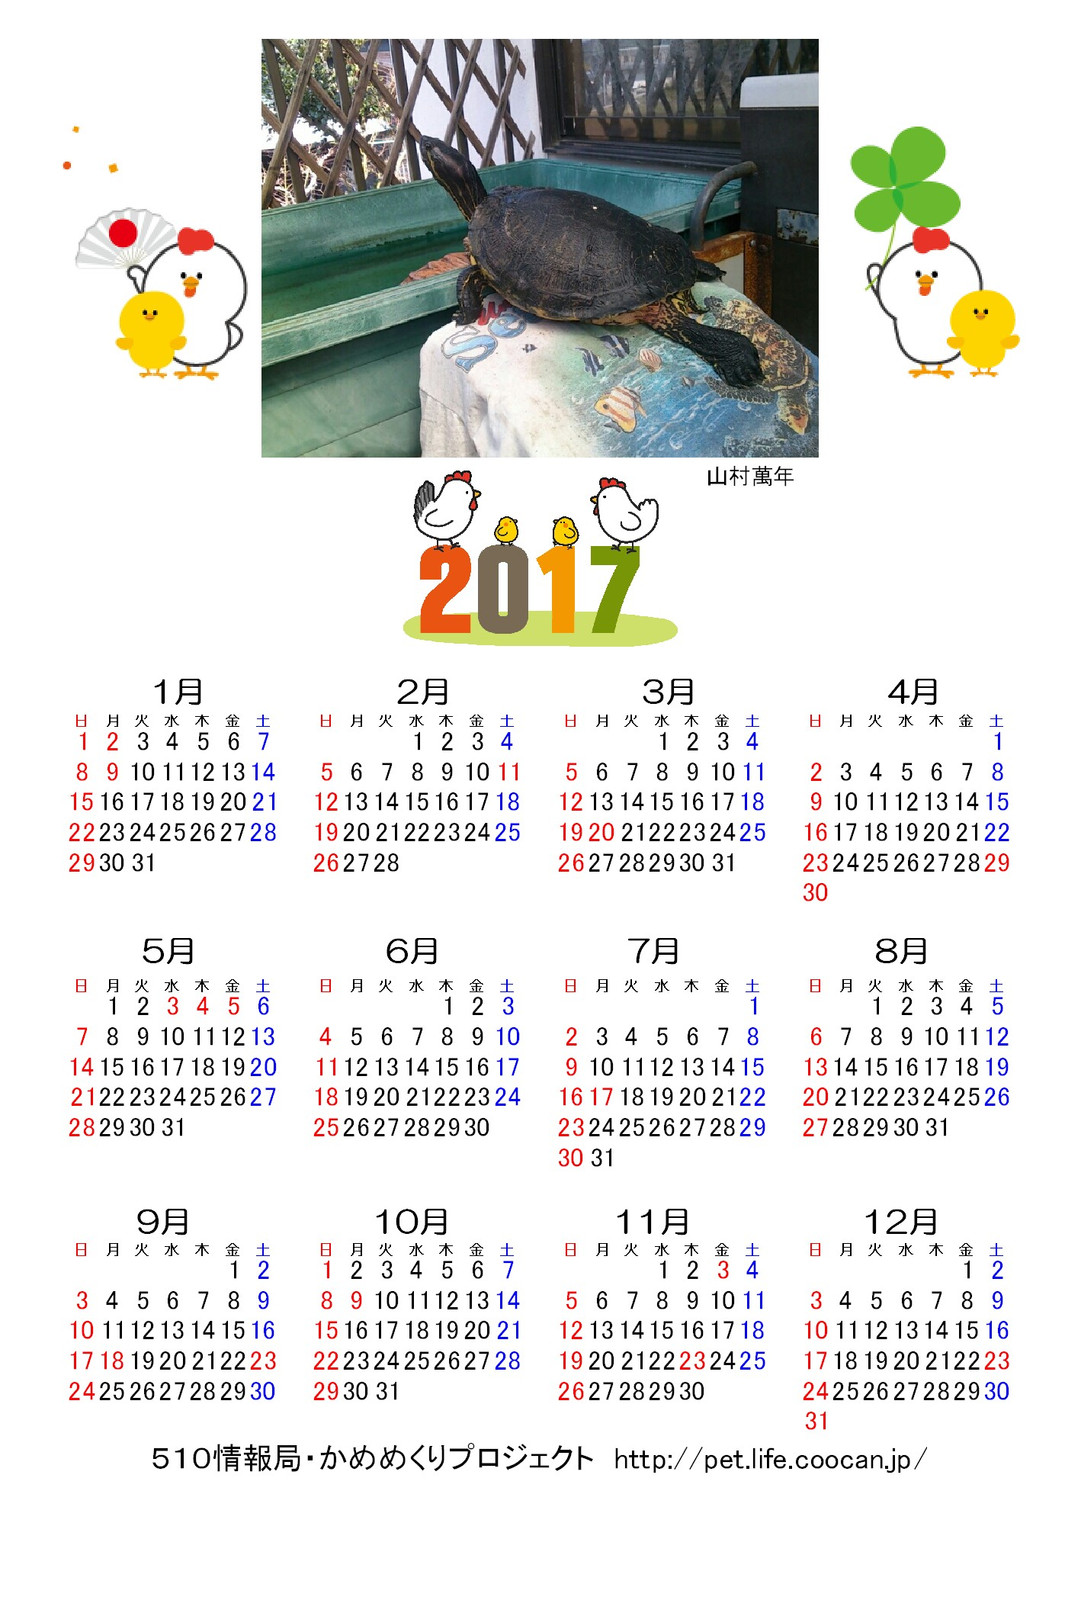 2017turtlecalendar_2